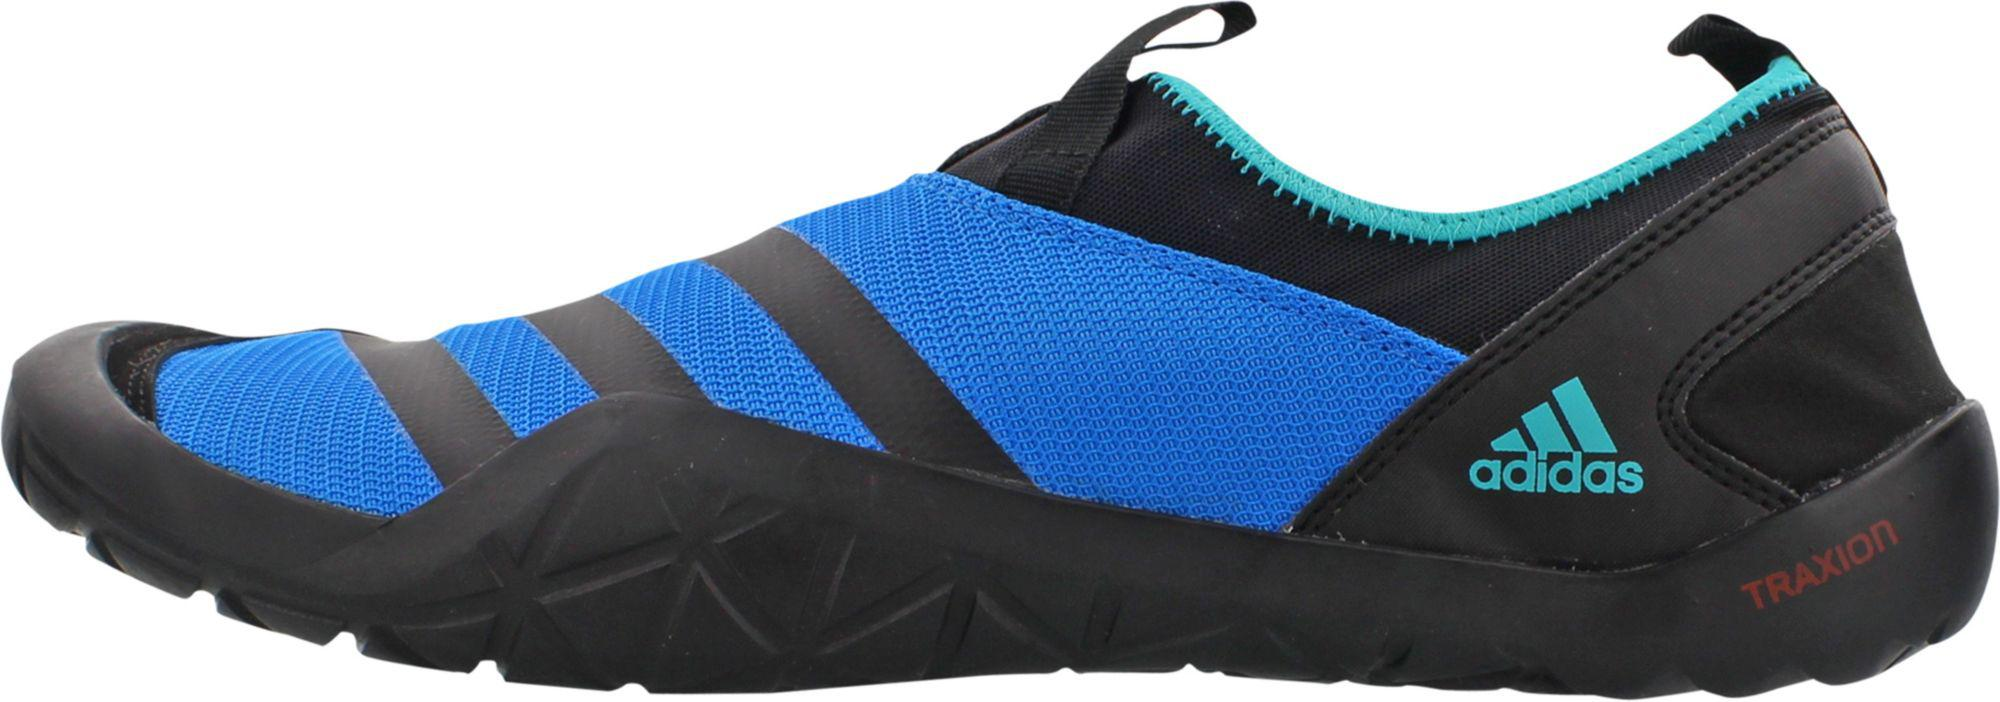 23bf67176fc adidas Outdoor Climacool Jawpaw Slip-on Water Shoes in Blue for Men ...